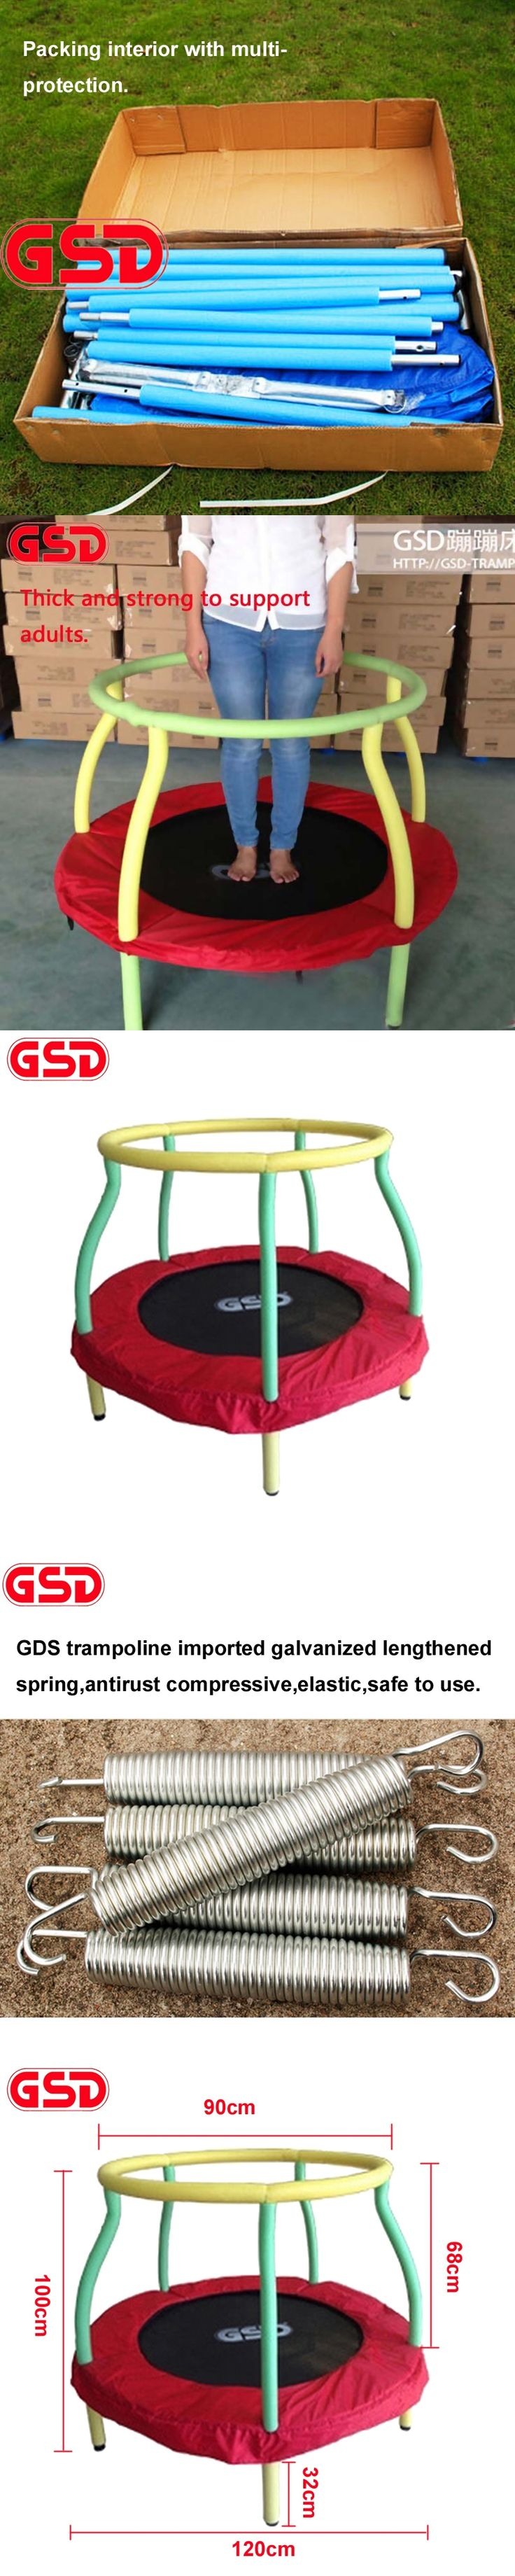 GSD High quality 4 Feet 48 Inch Round Kids Spring Trampoline with Safe Net Fits, jump bed TUV-GS CE approval